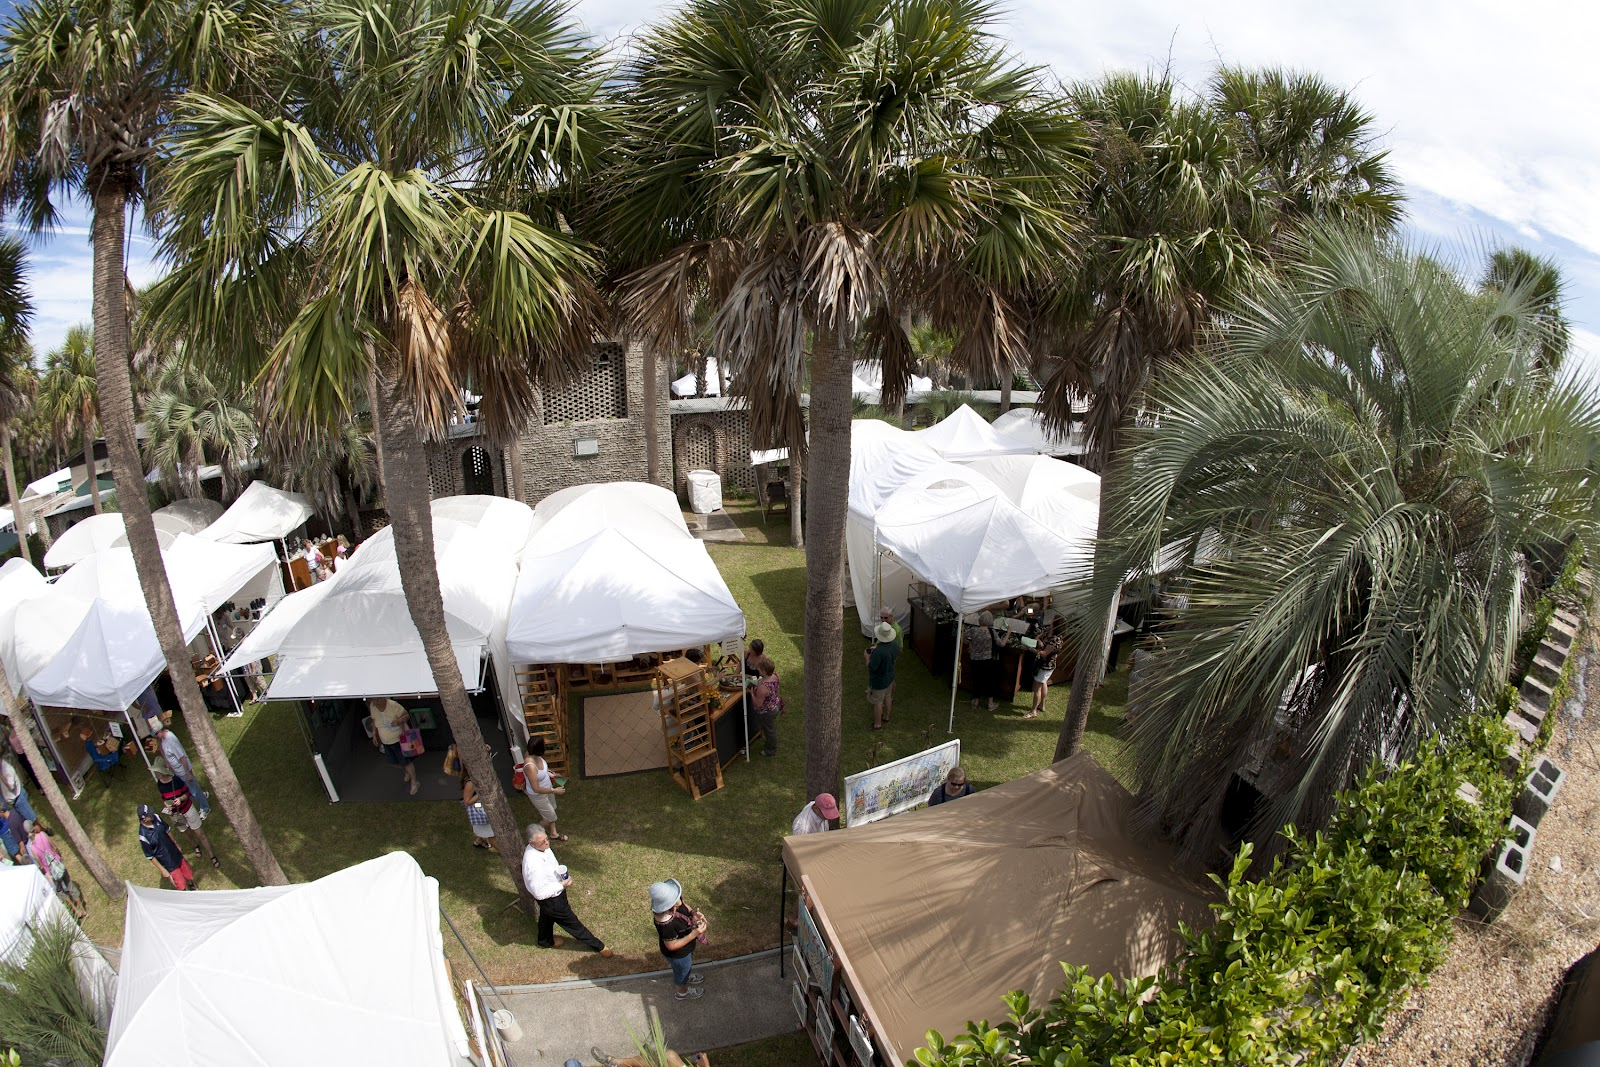 The 42nd Annual Atalaya Arts and Crafts Festival